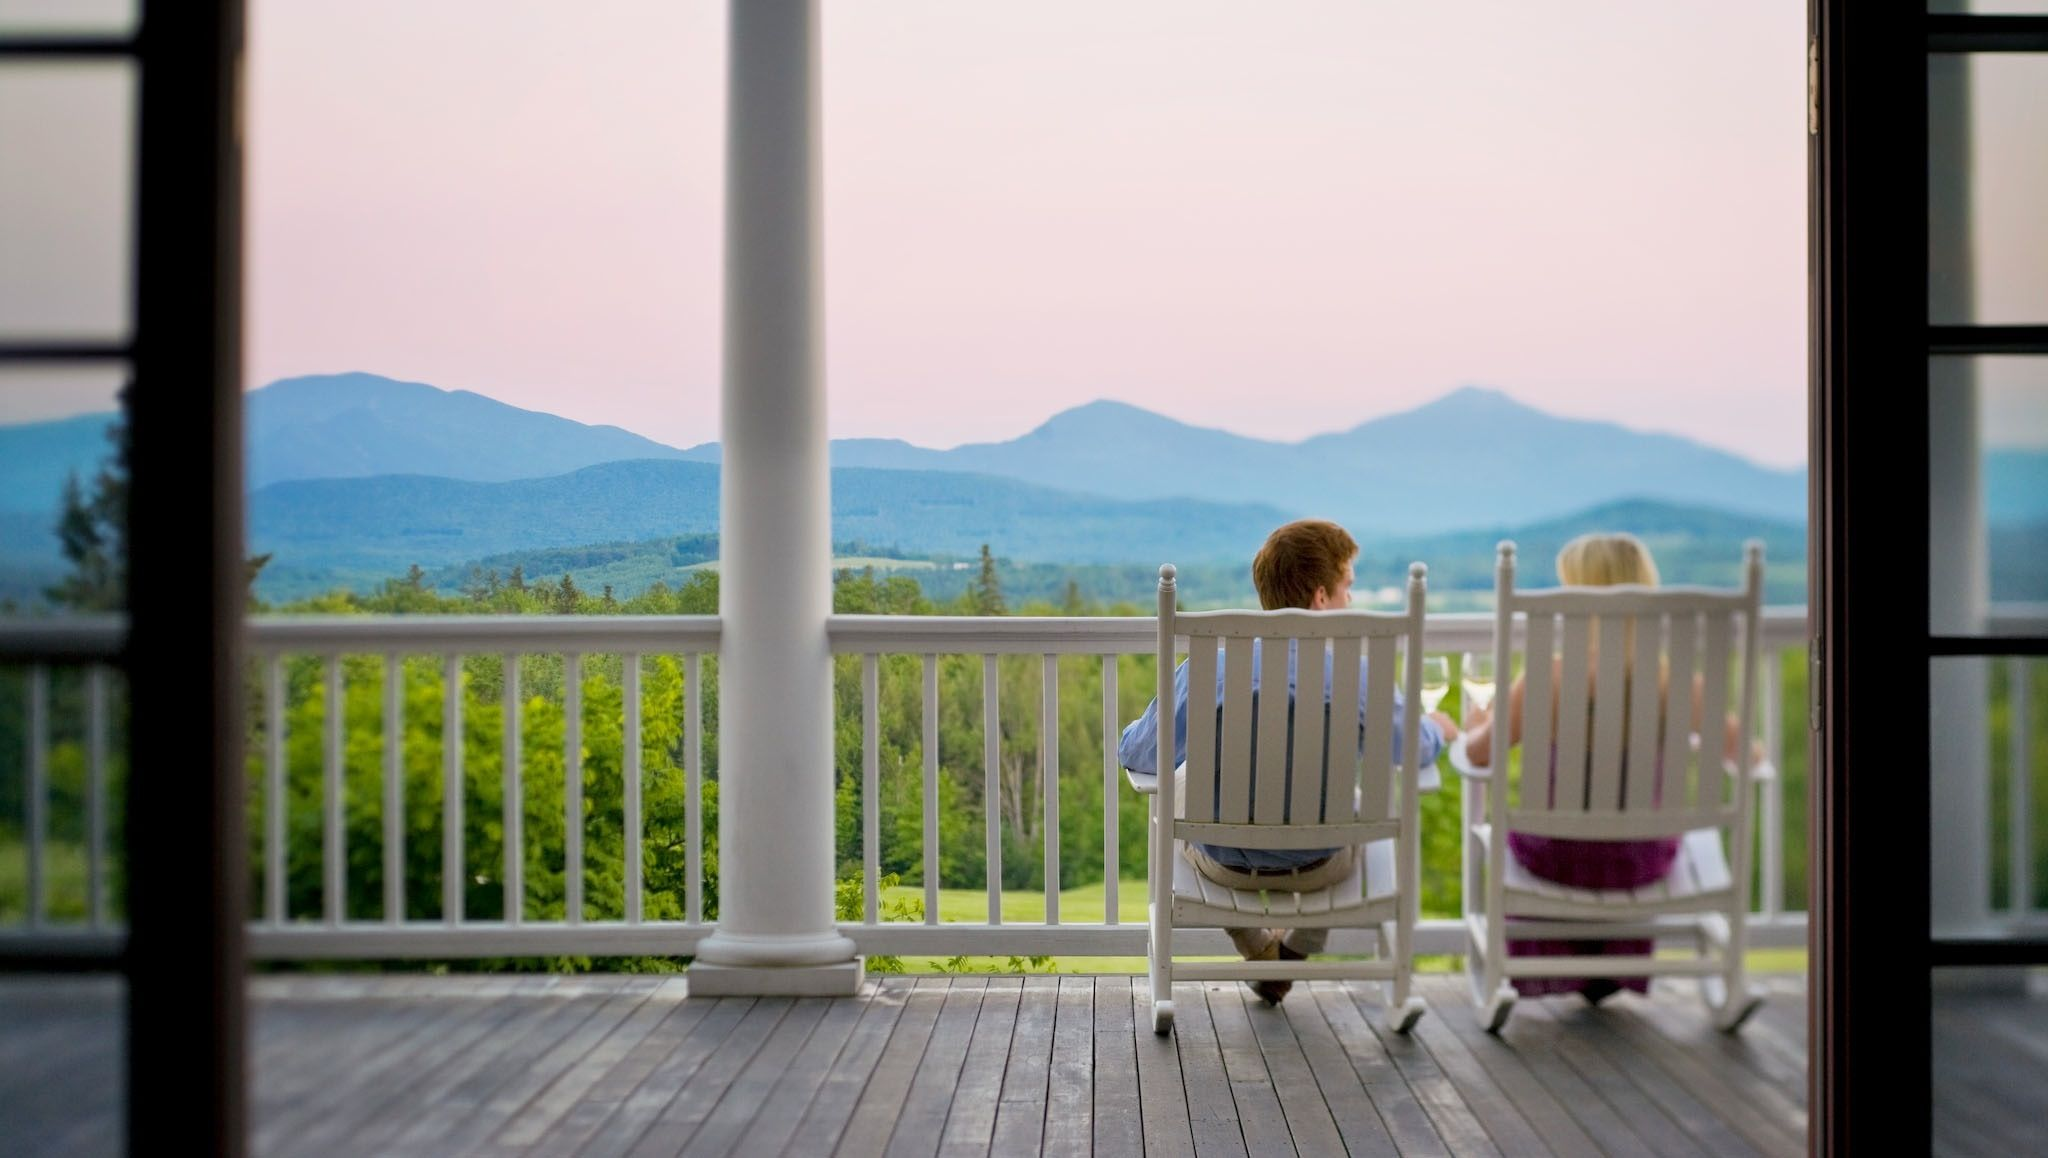 These historic New England honeymoon locales are full of tradition, beauty, and romance.